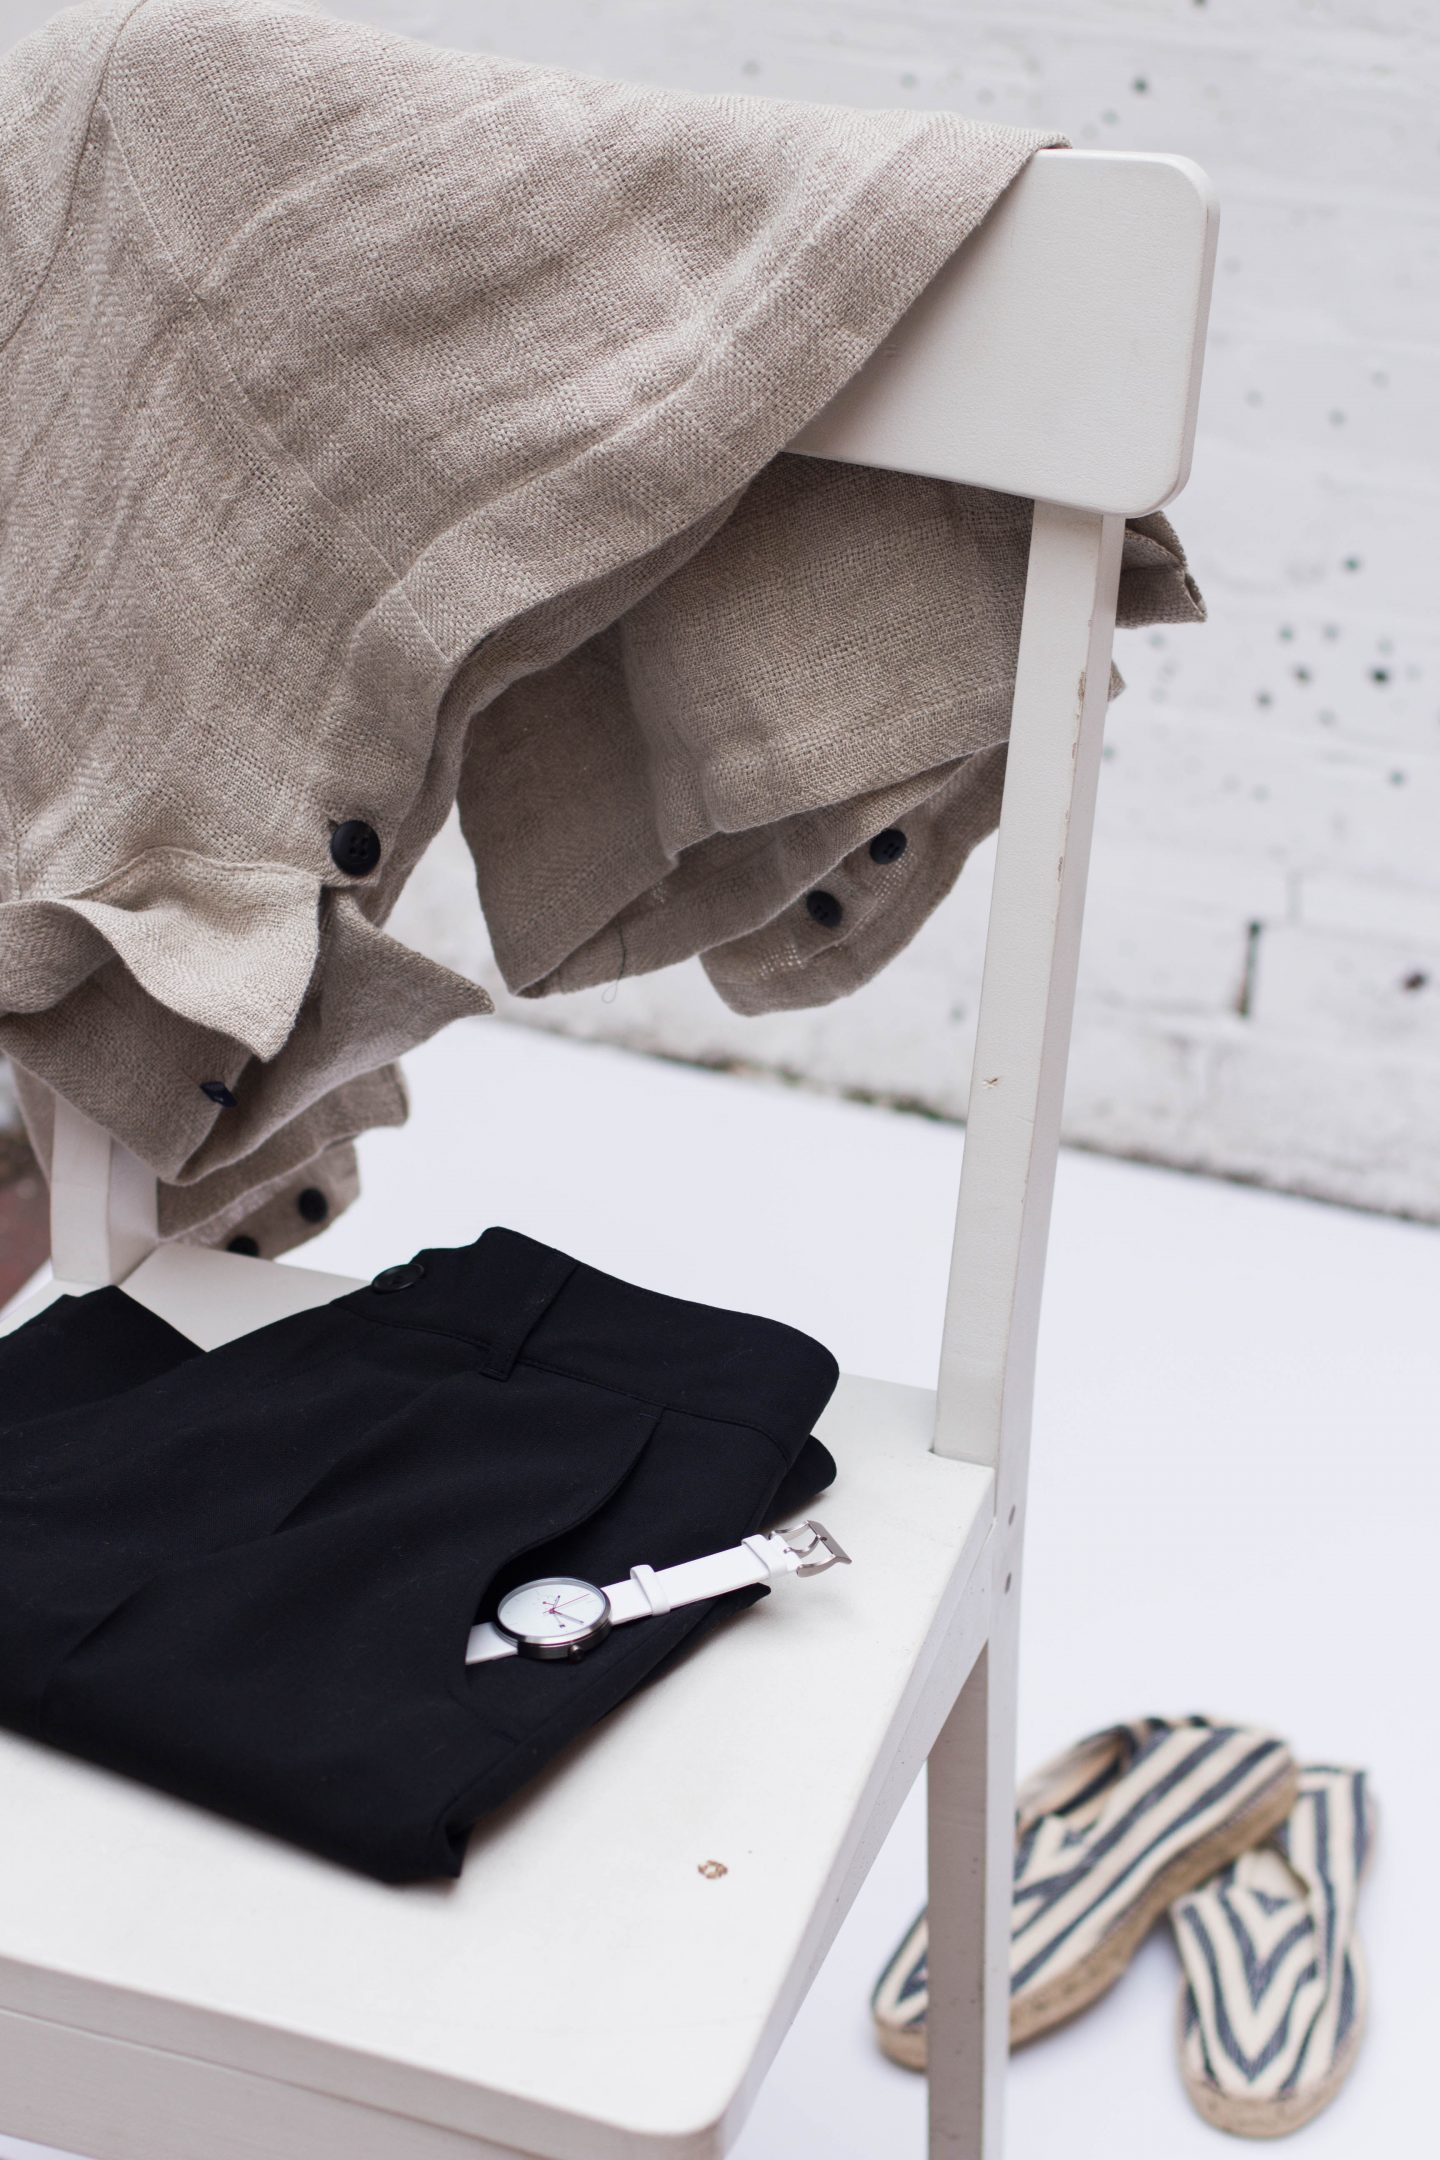 How to build your perfect wardrobe: 10 simple tricks